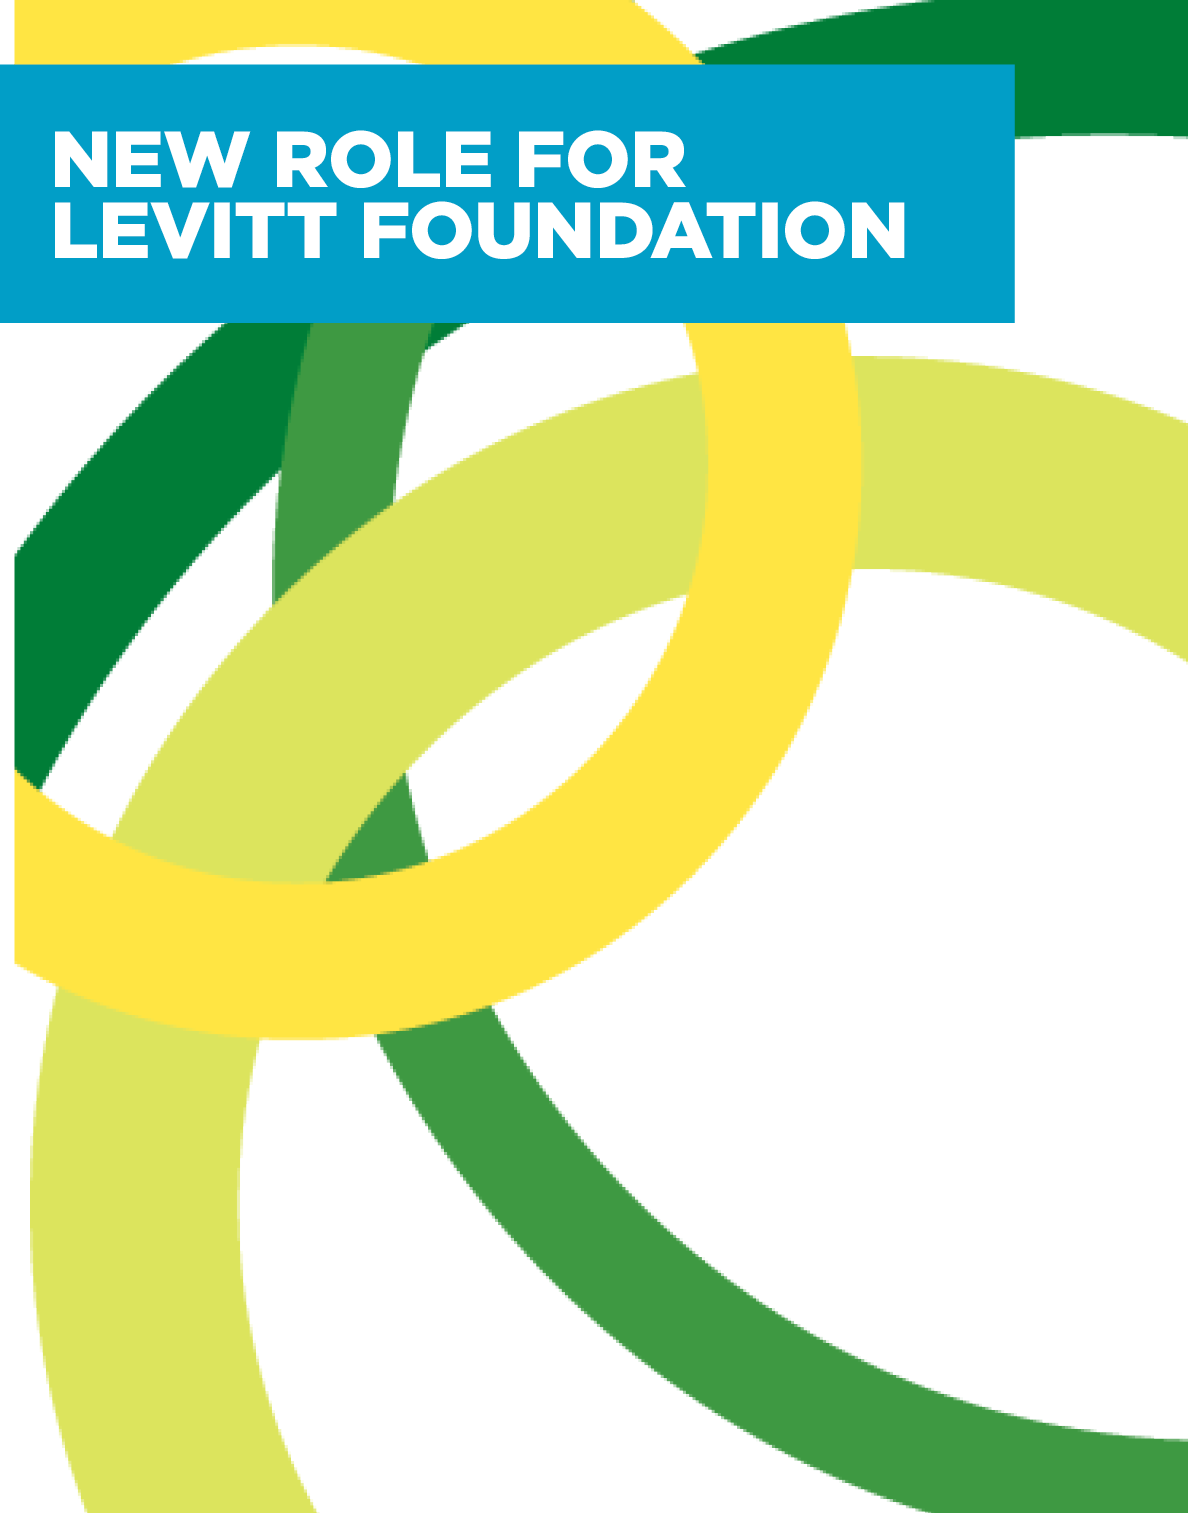 New Role for Levitt Foundation